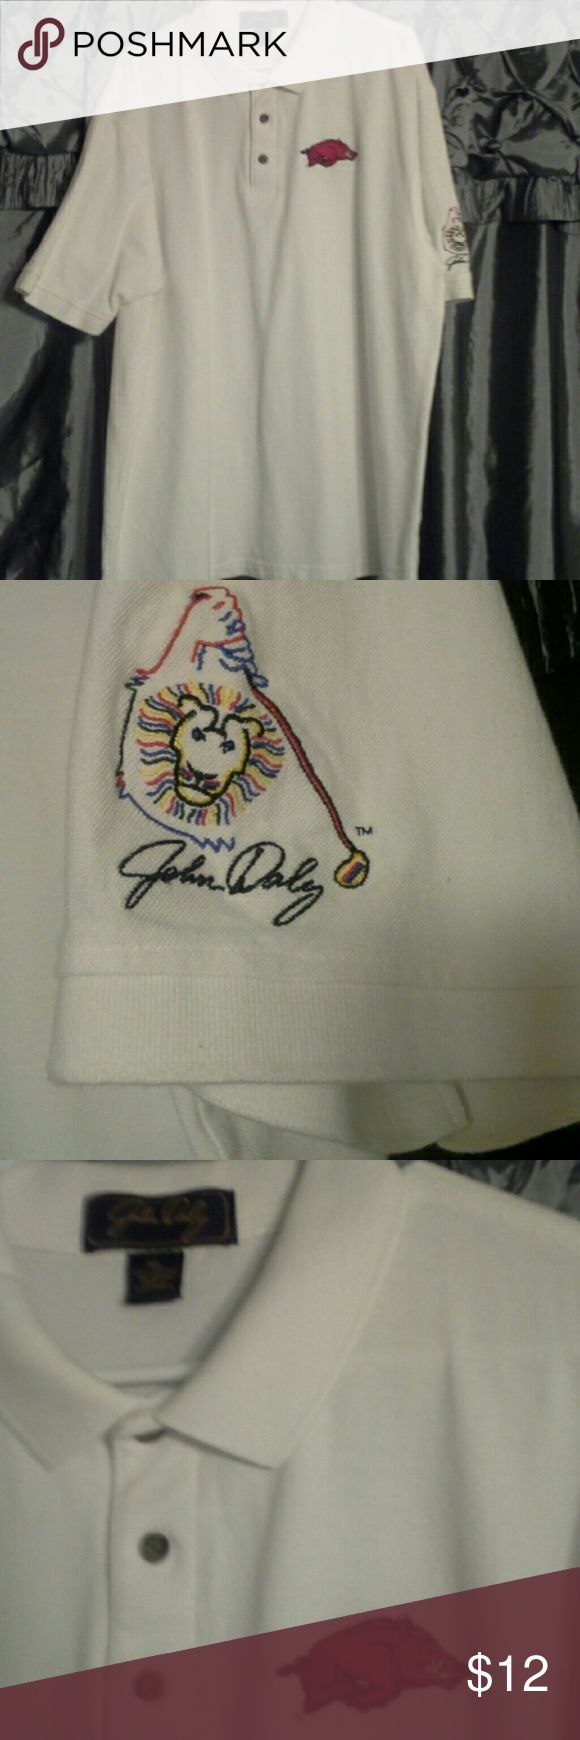 John Daly Golf shirt  x- lg. White John Daly golf shirt in extra large...razorback on front...excellent condition! John Daly Shirts Polos